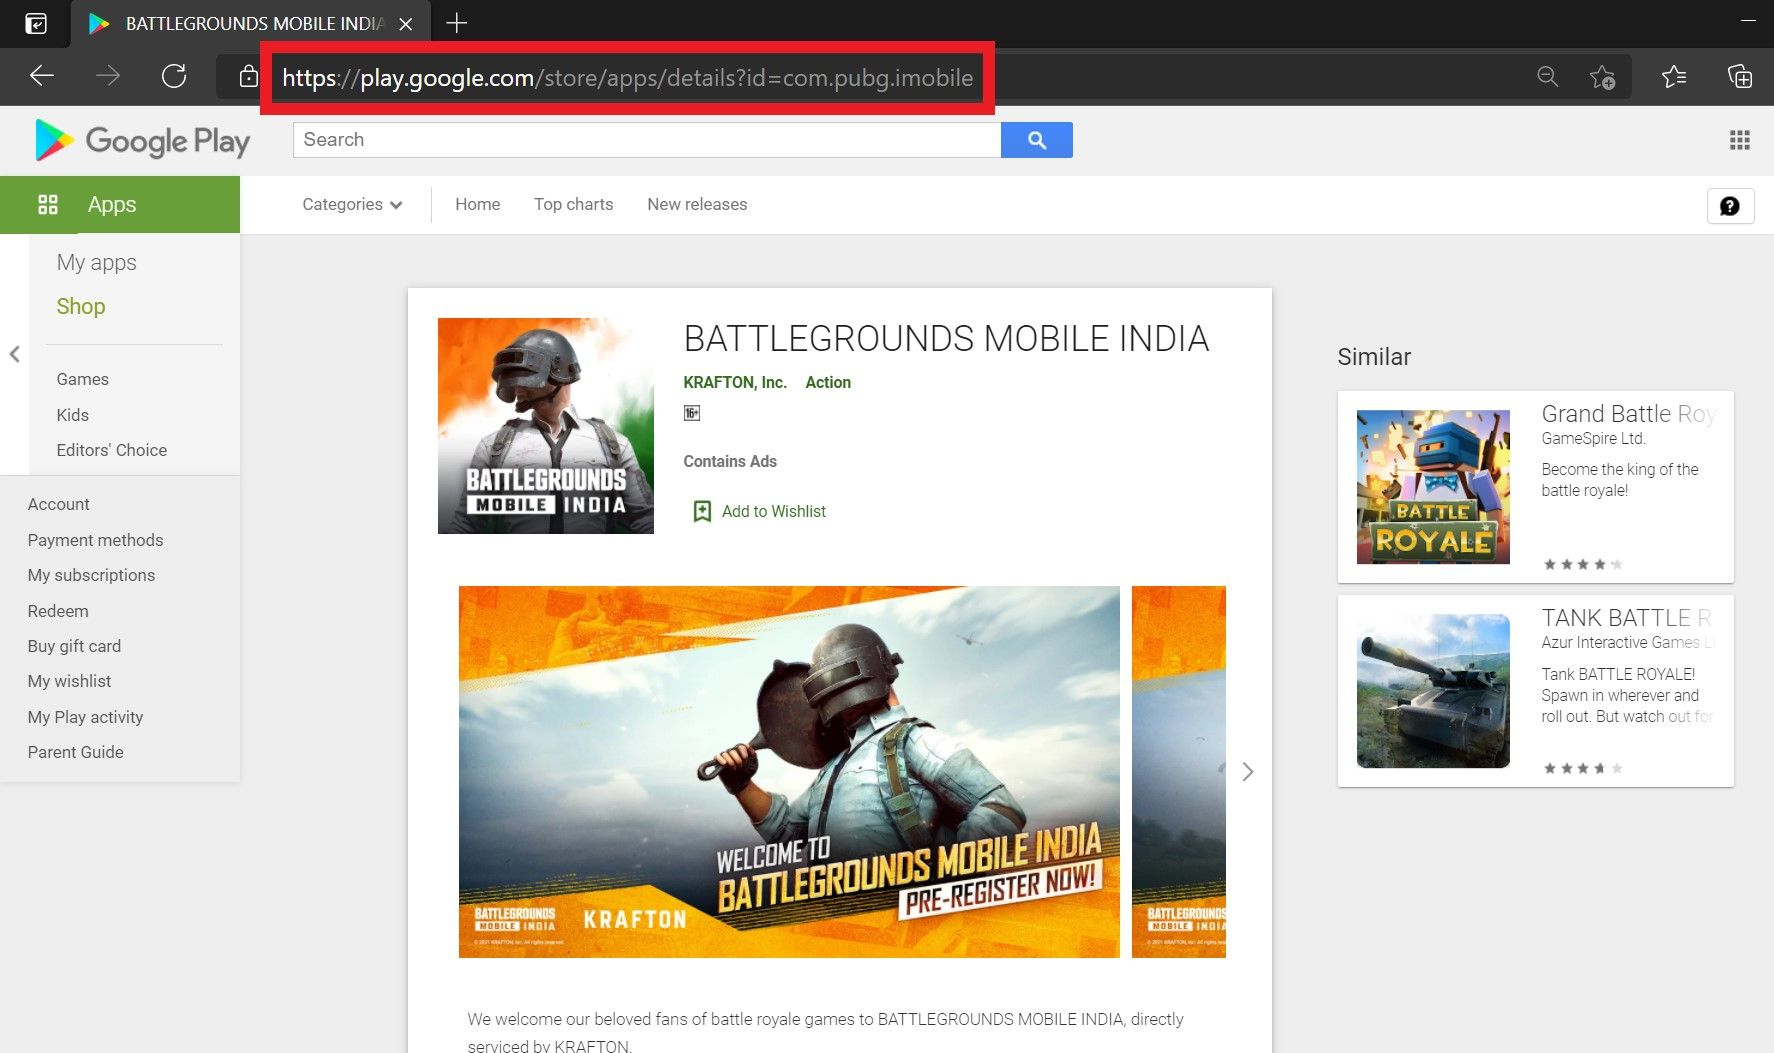 PUBG Mobile spotted in Google Play Store URL for Battlegrounds Mobile India